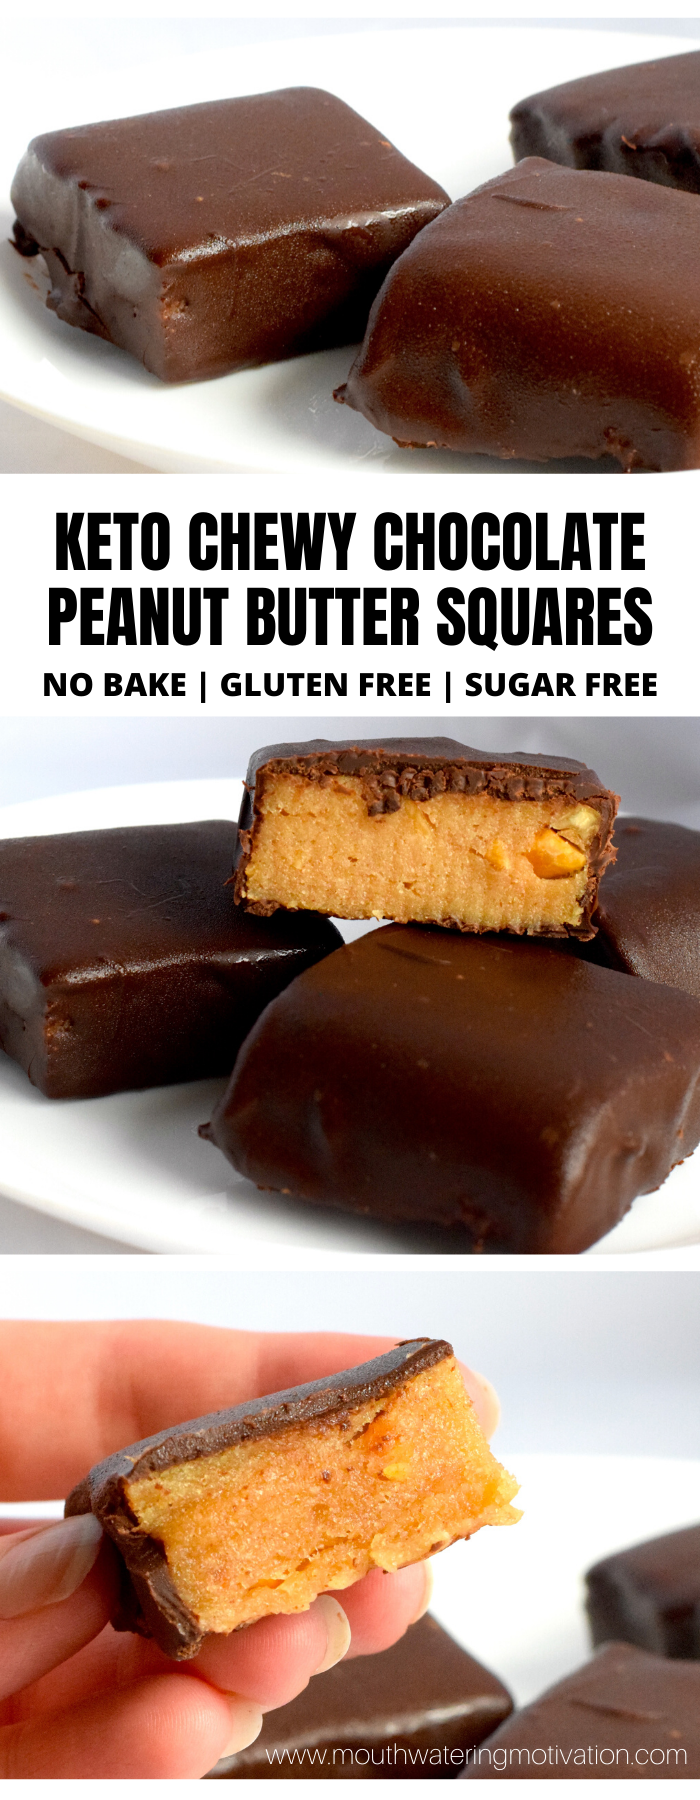 Keto Chewy Chocolate Peanut Butter Squares